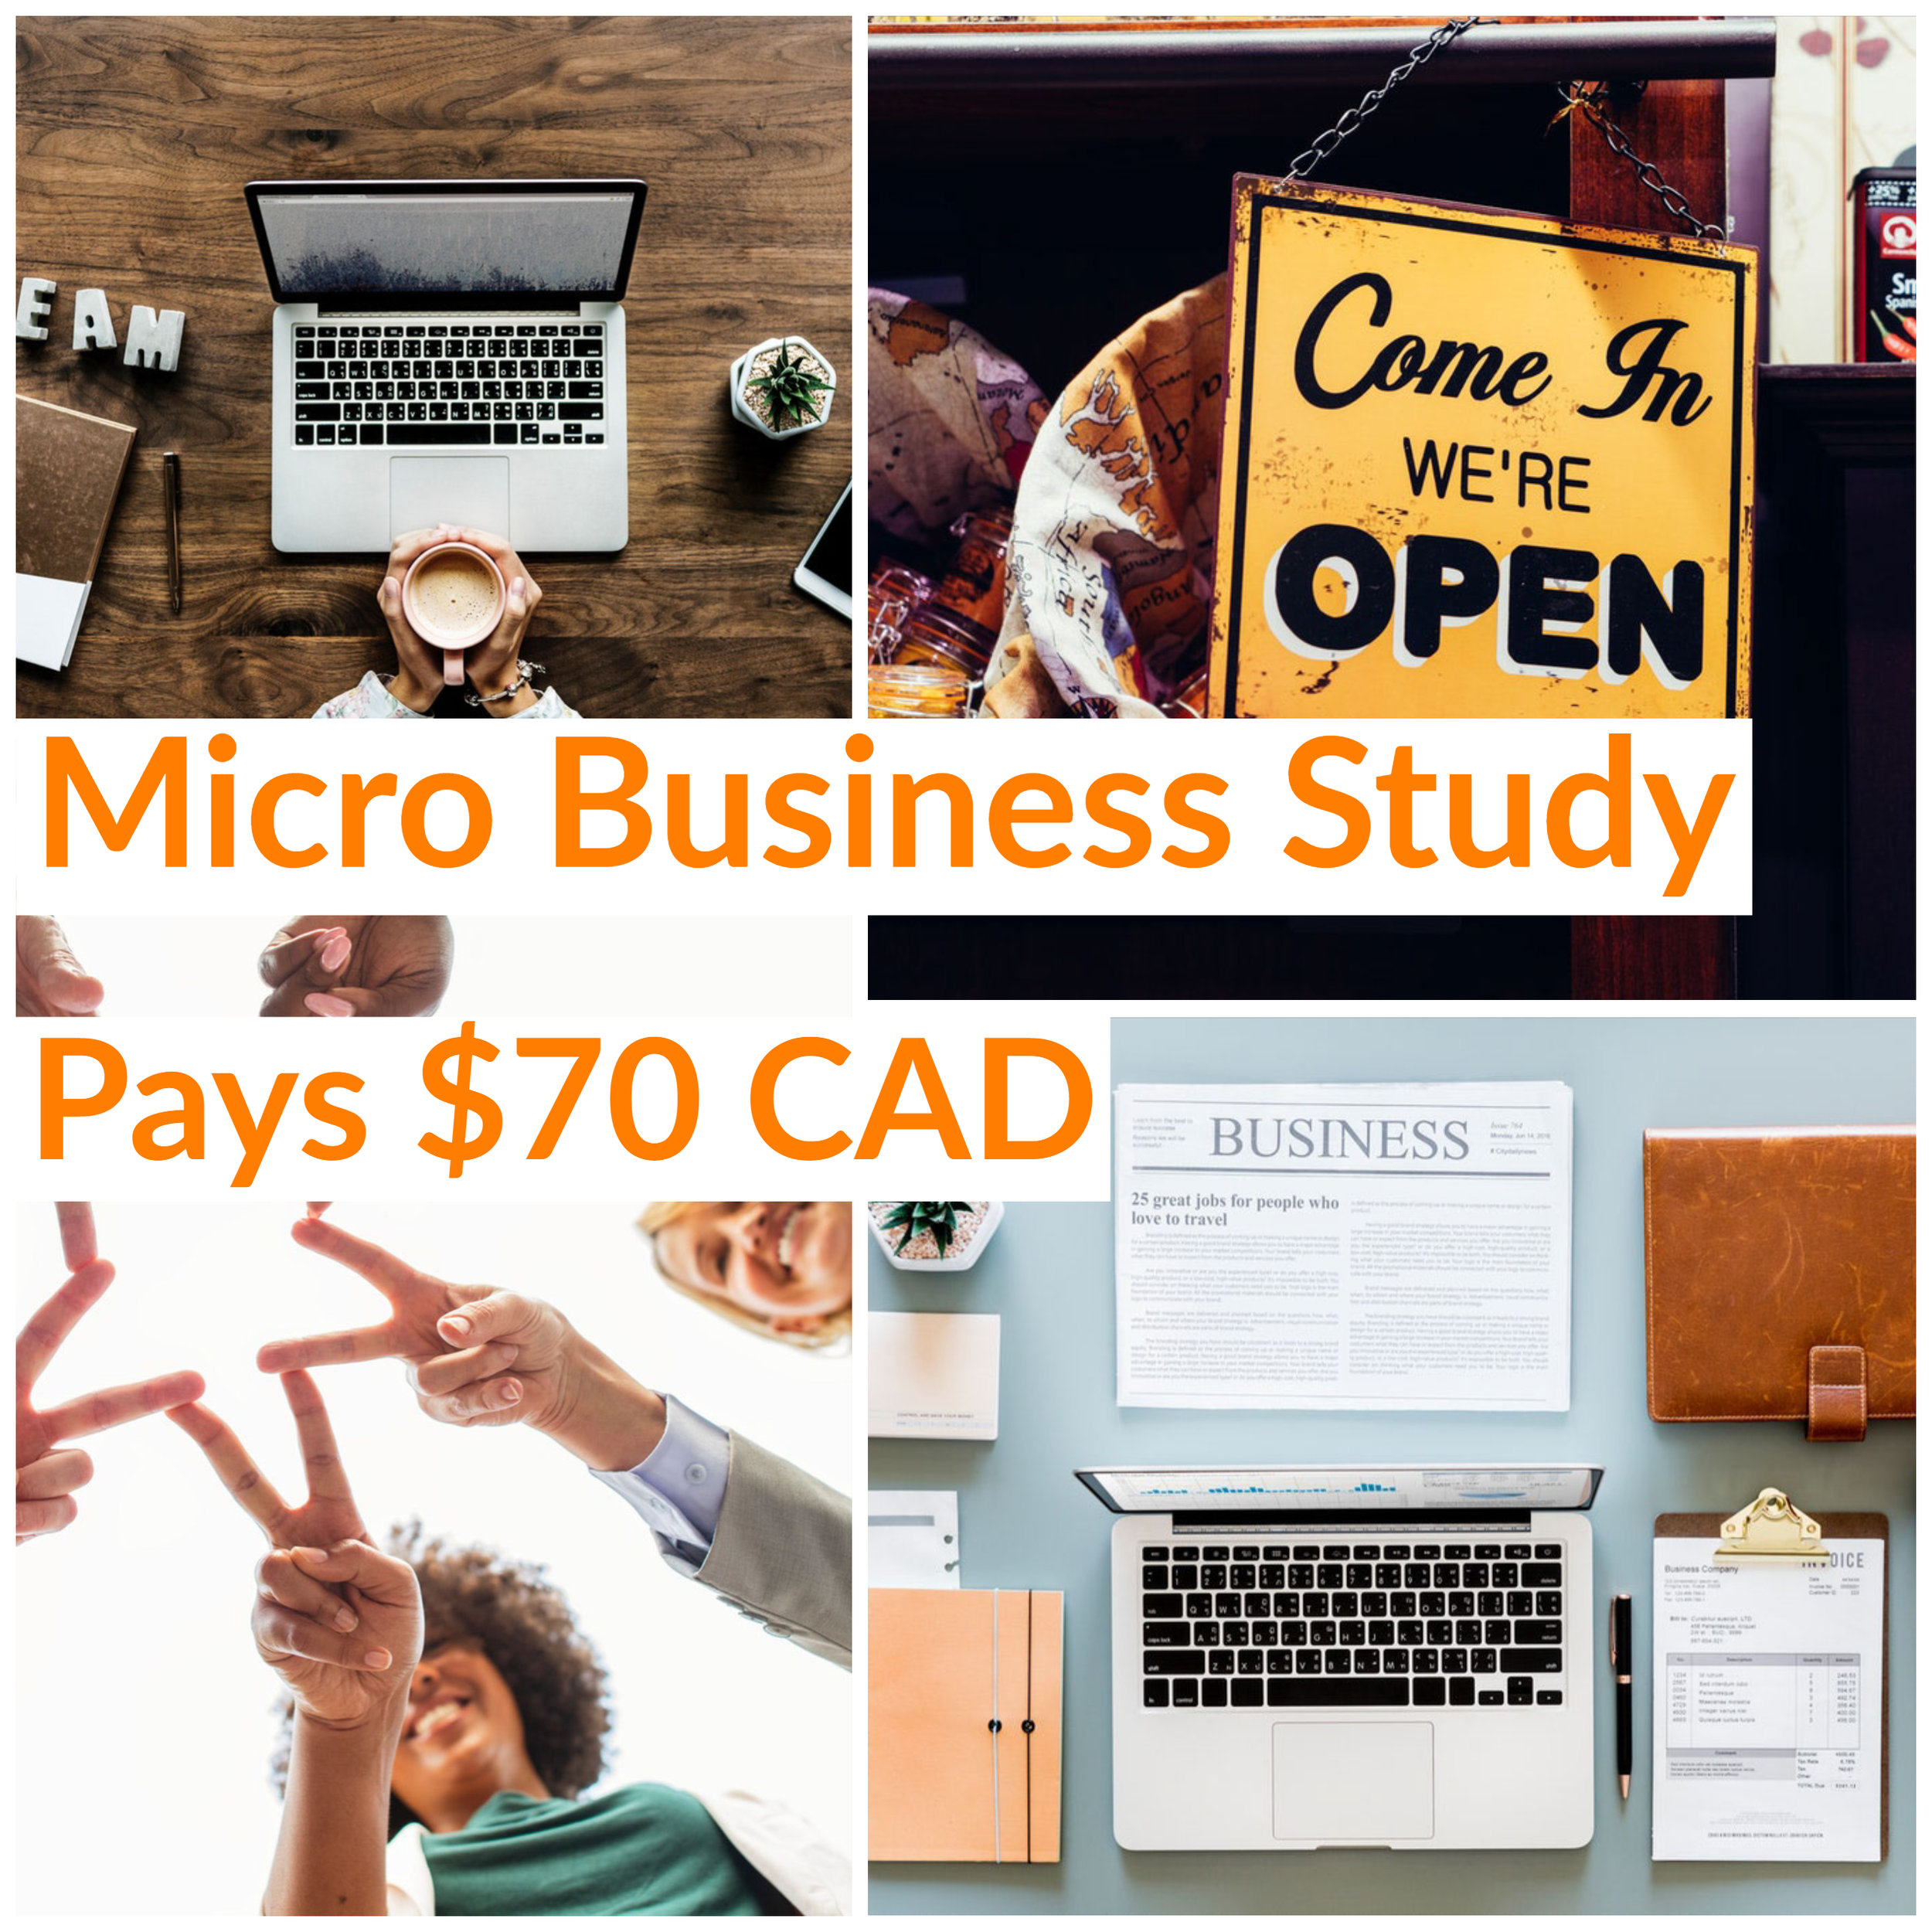 Gold & Gold - Micro Business Study.jpg